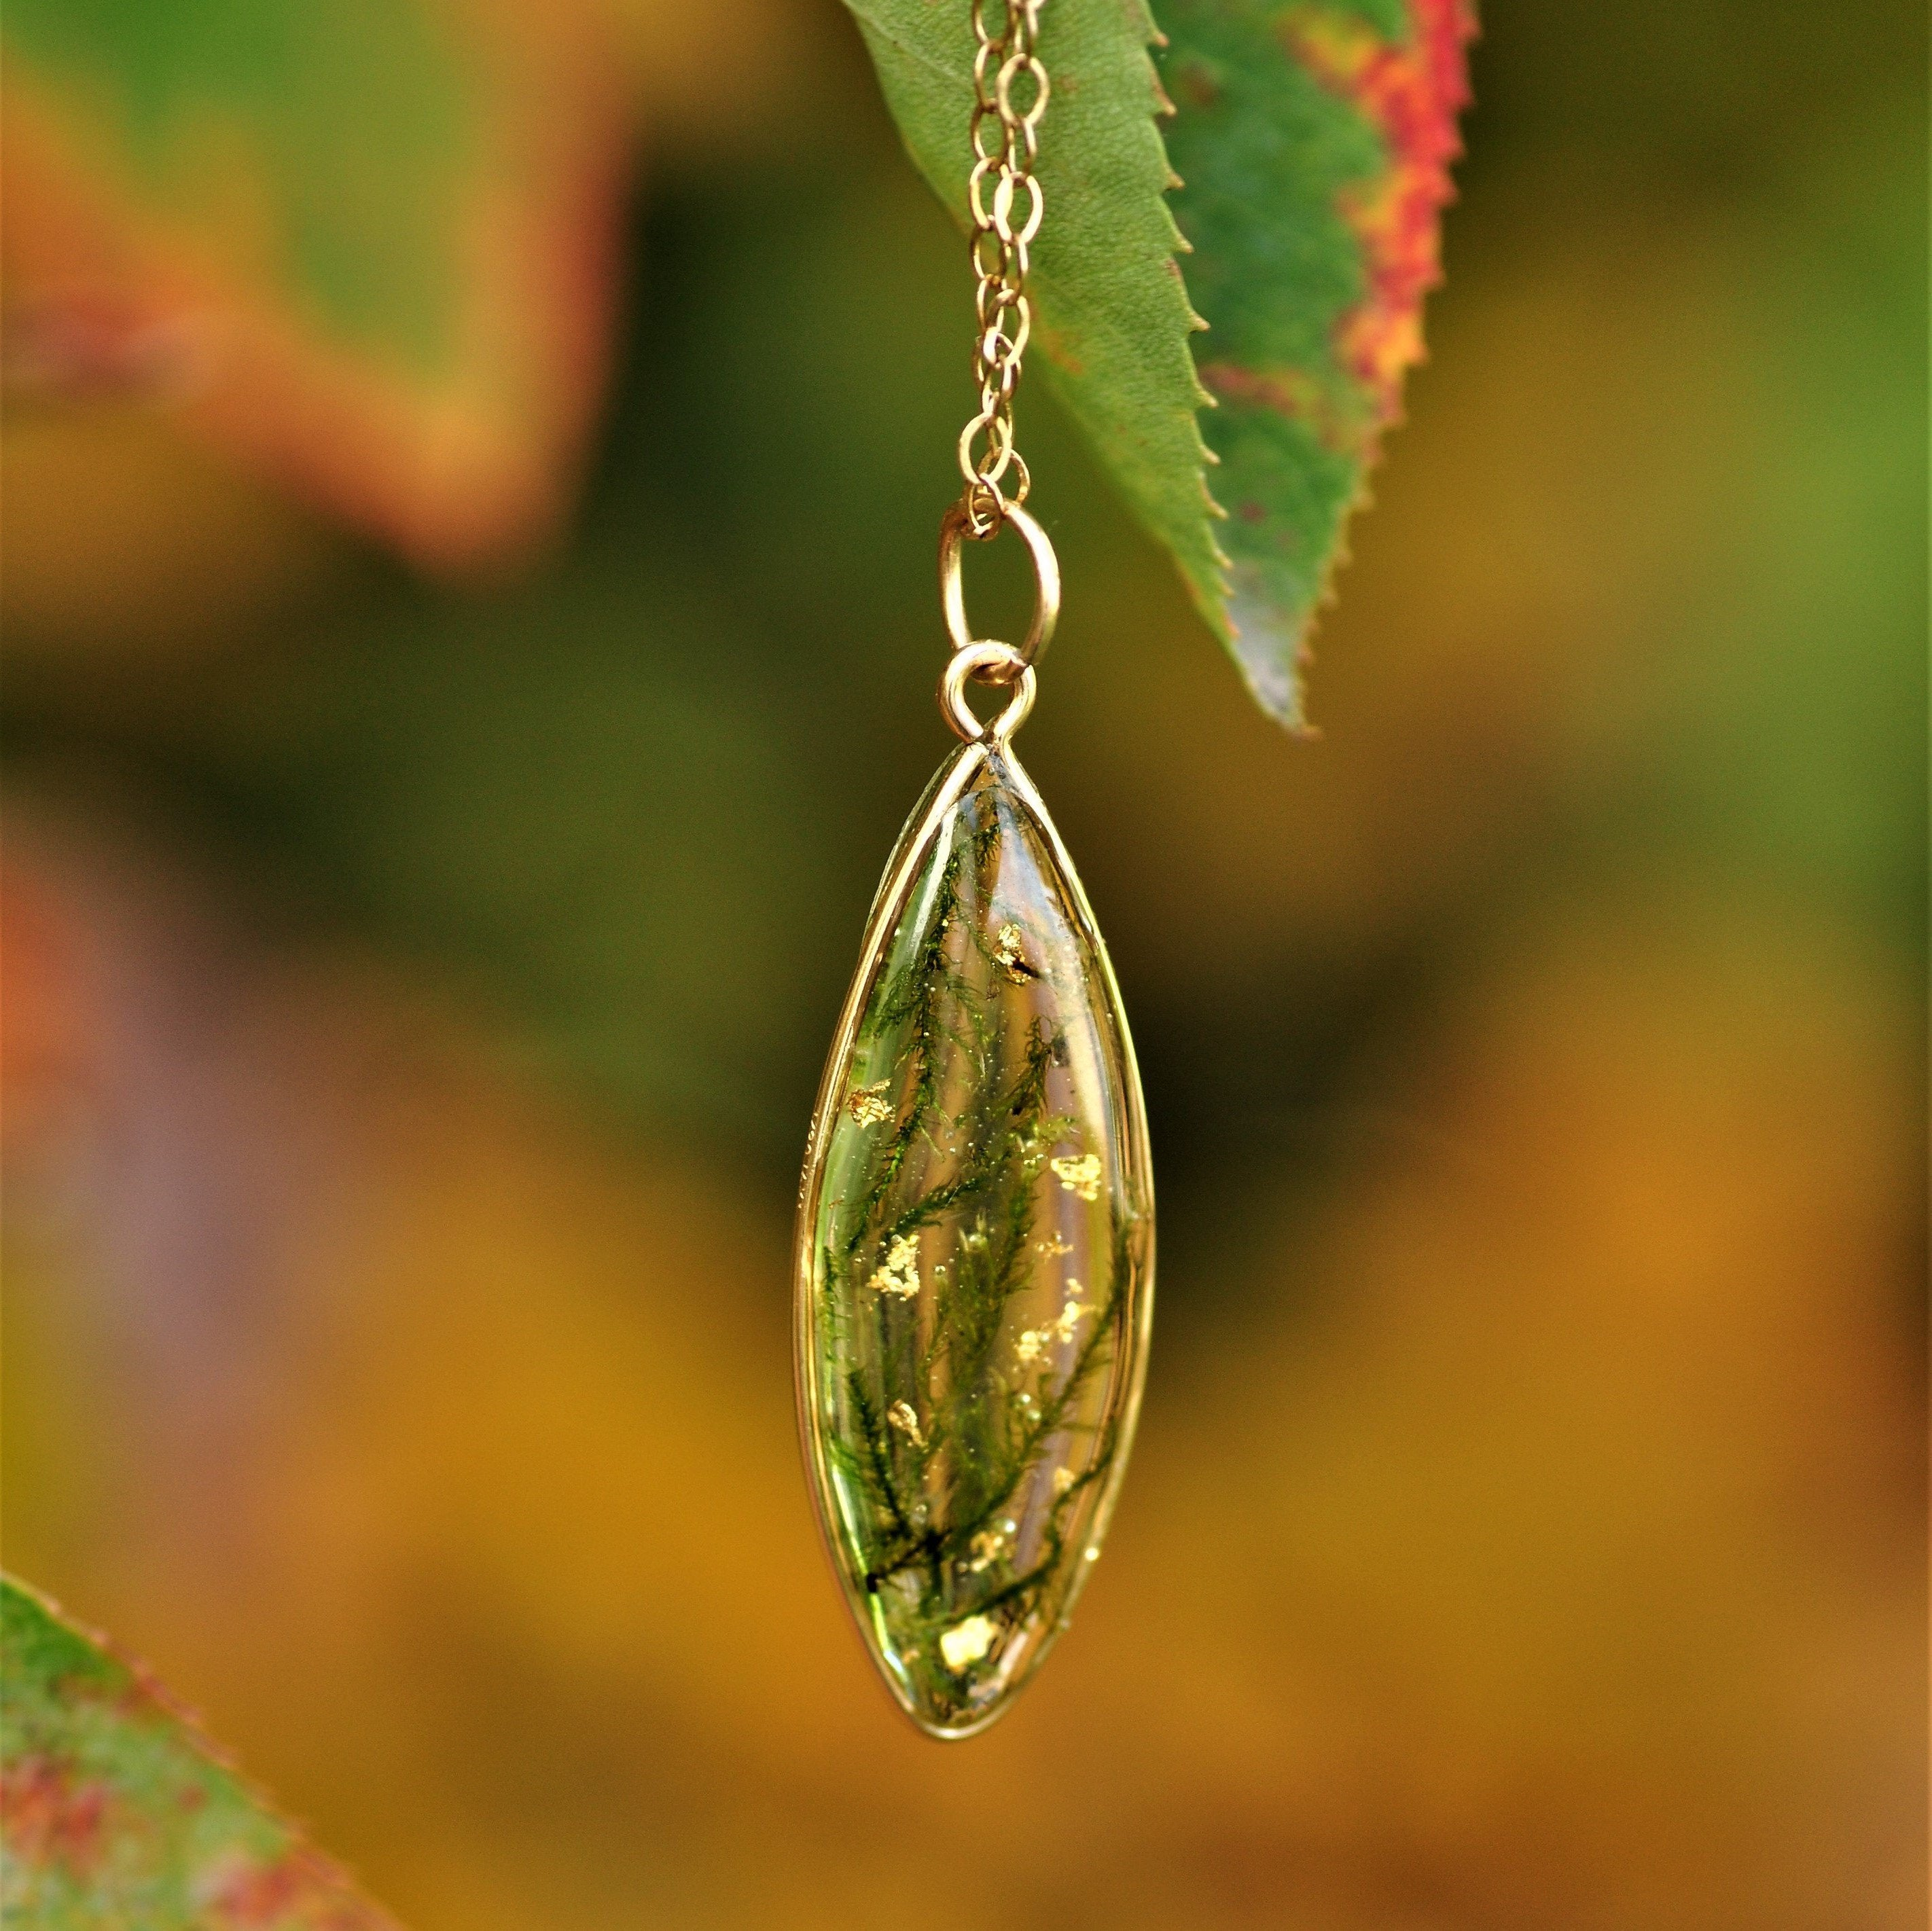 moss droplet necklace